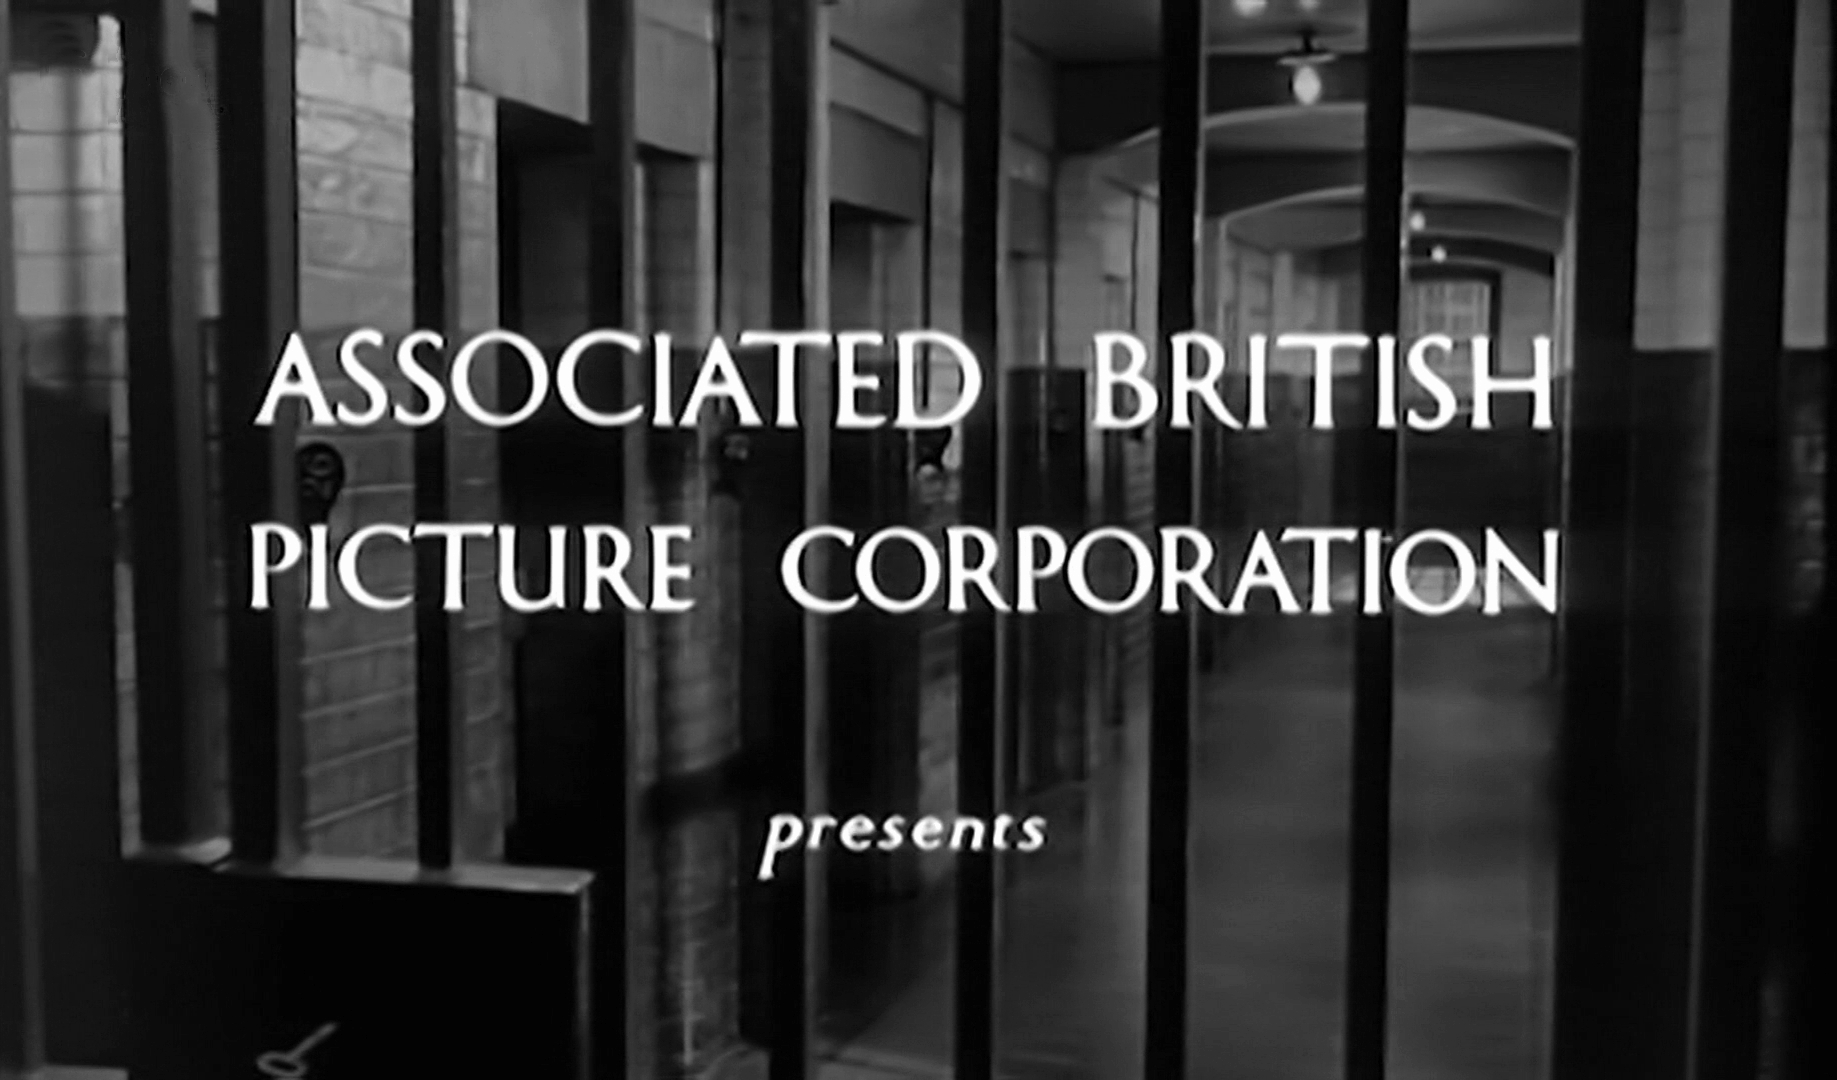 Main title from The Weak and the Wicked (1954) (1). Associated British Picture Corporation presents